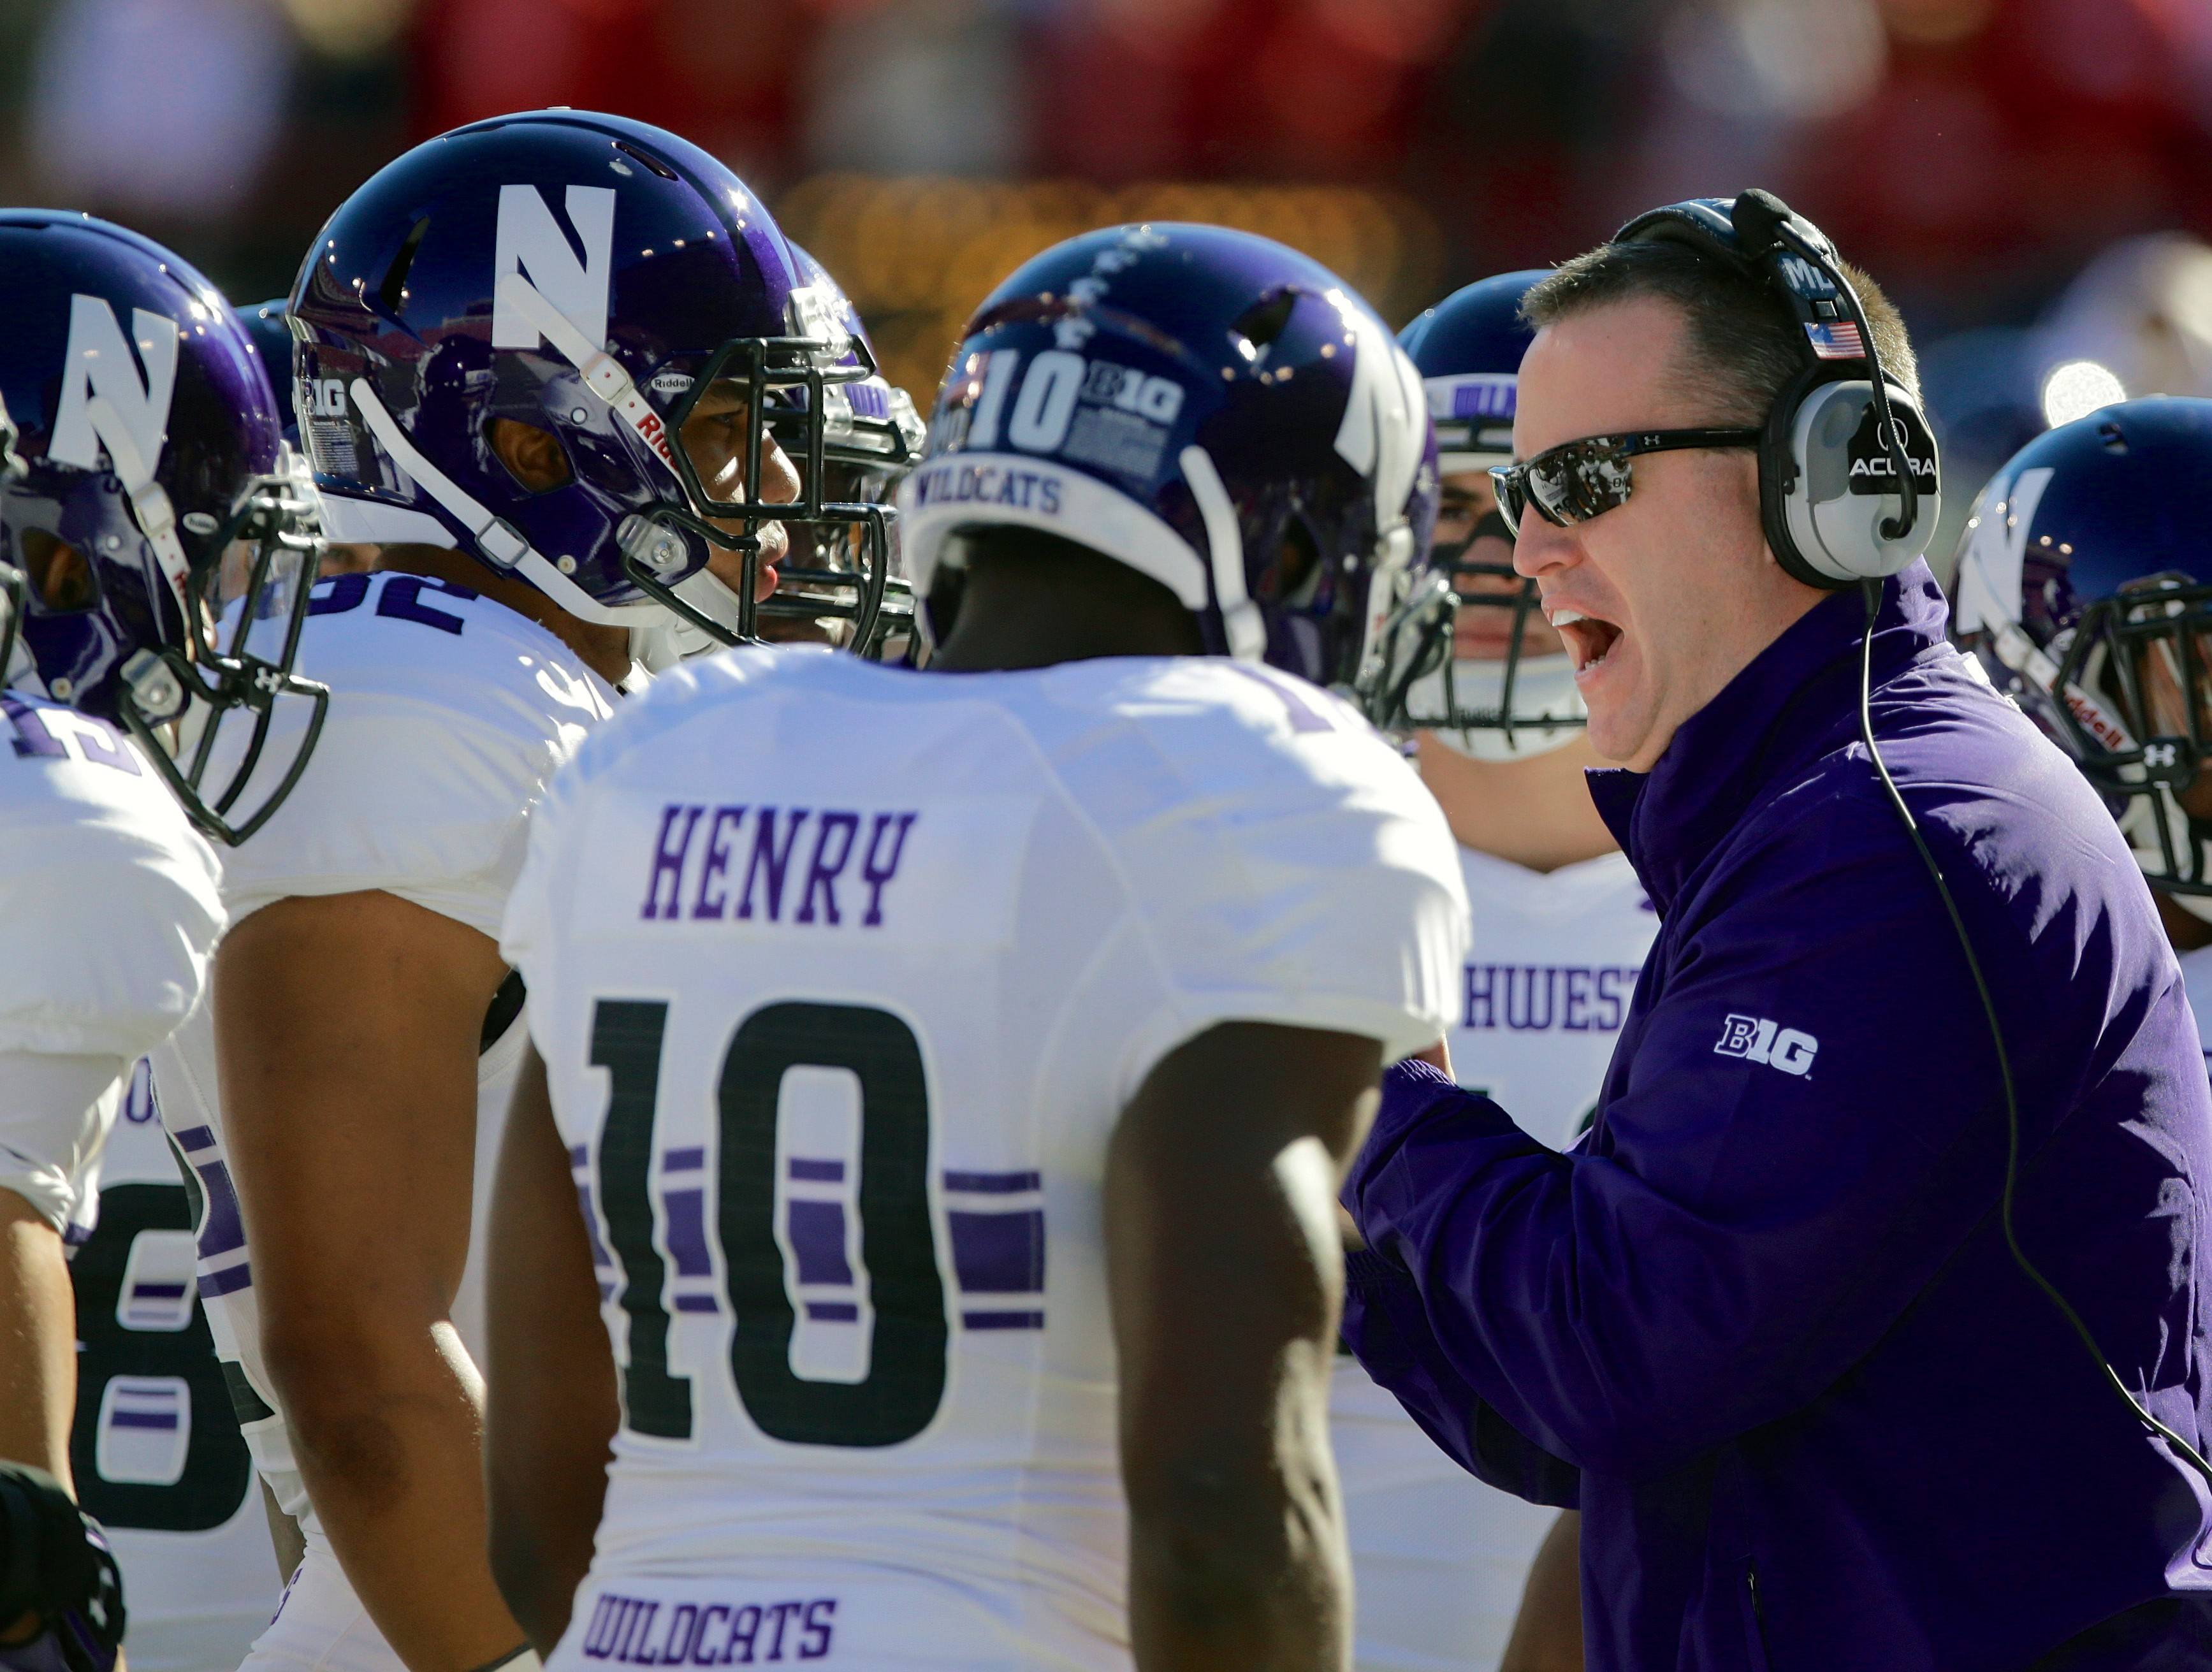 Northwestern coach testifies against unionization